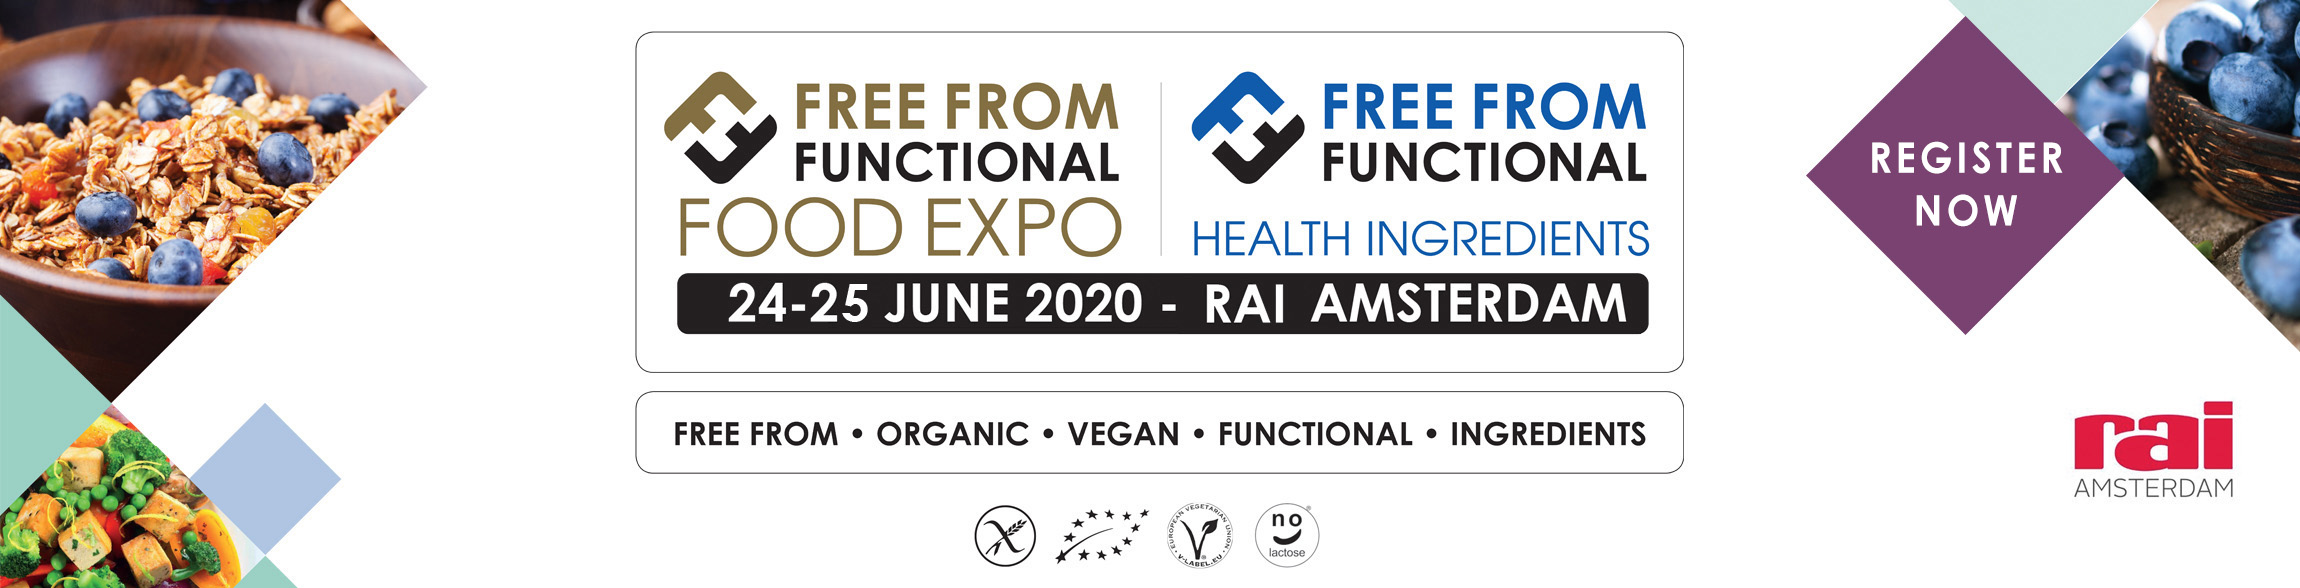 free from functional food expo 28 29 may 2019 barcelona spain